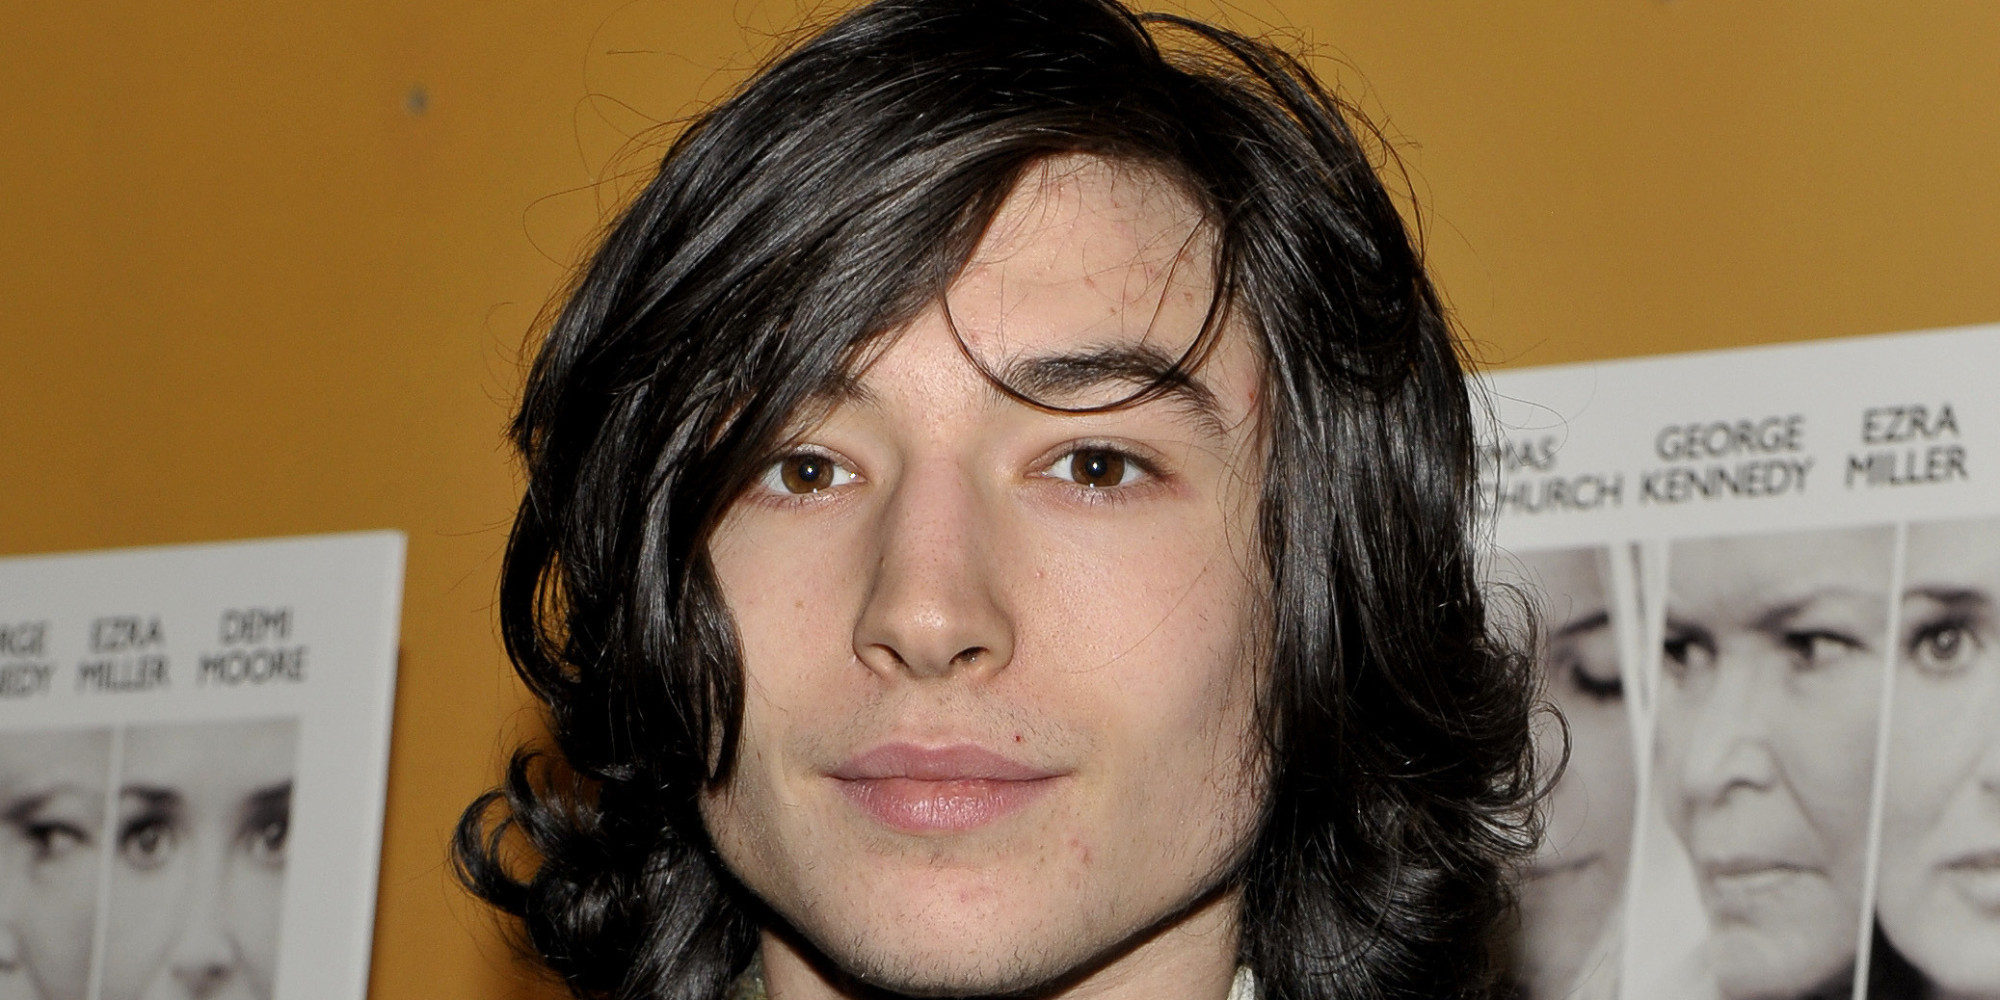 Ezra Miller Makes History With 'Flash' Casting | HuffPost